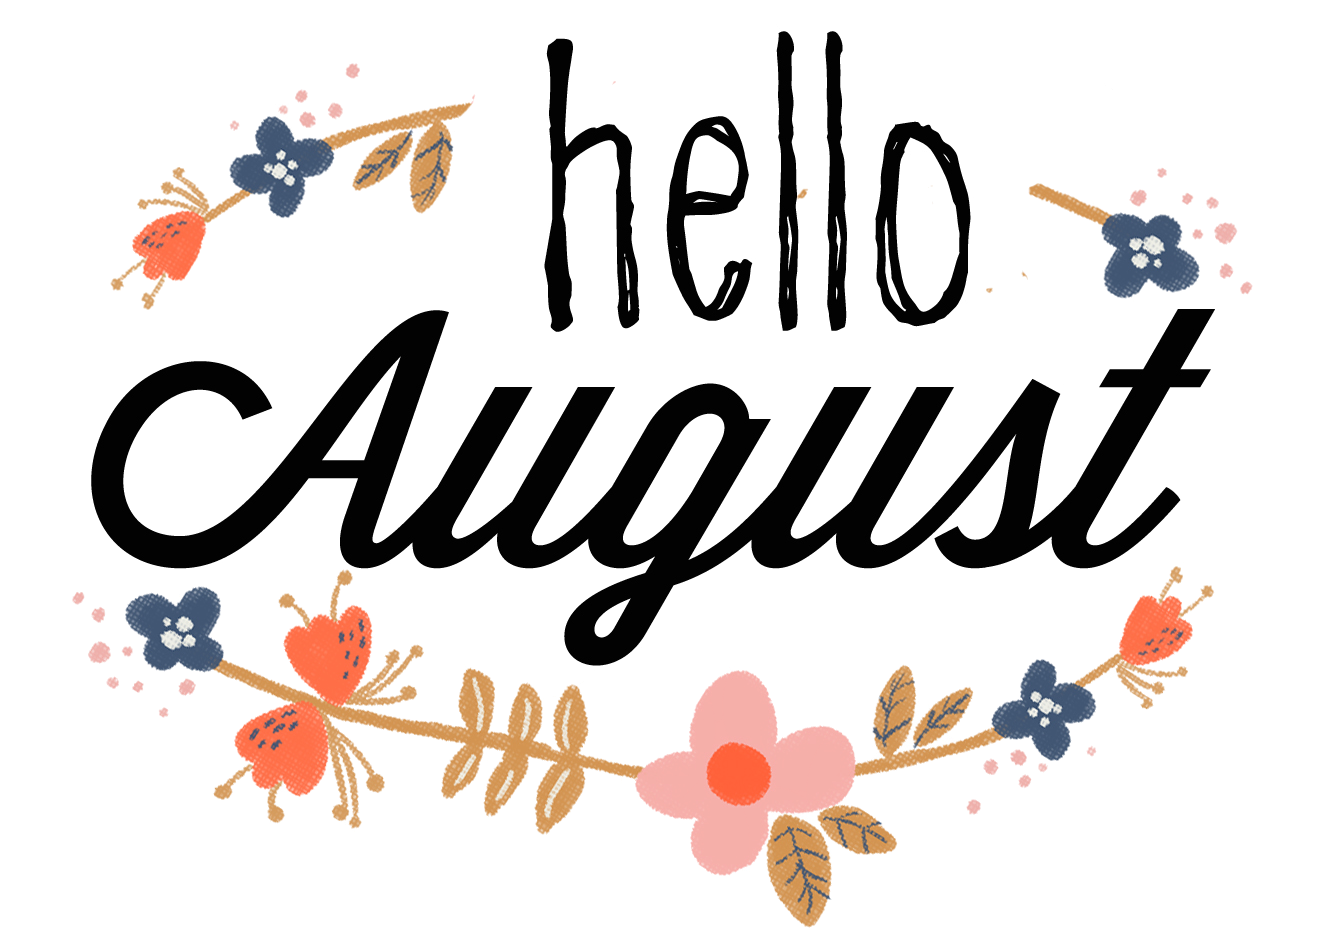 July clipart animated. August newsletter grove lawn